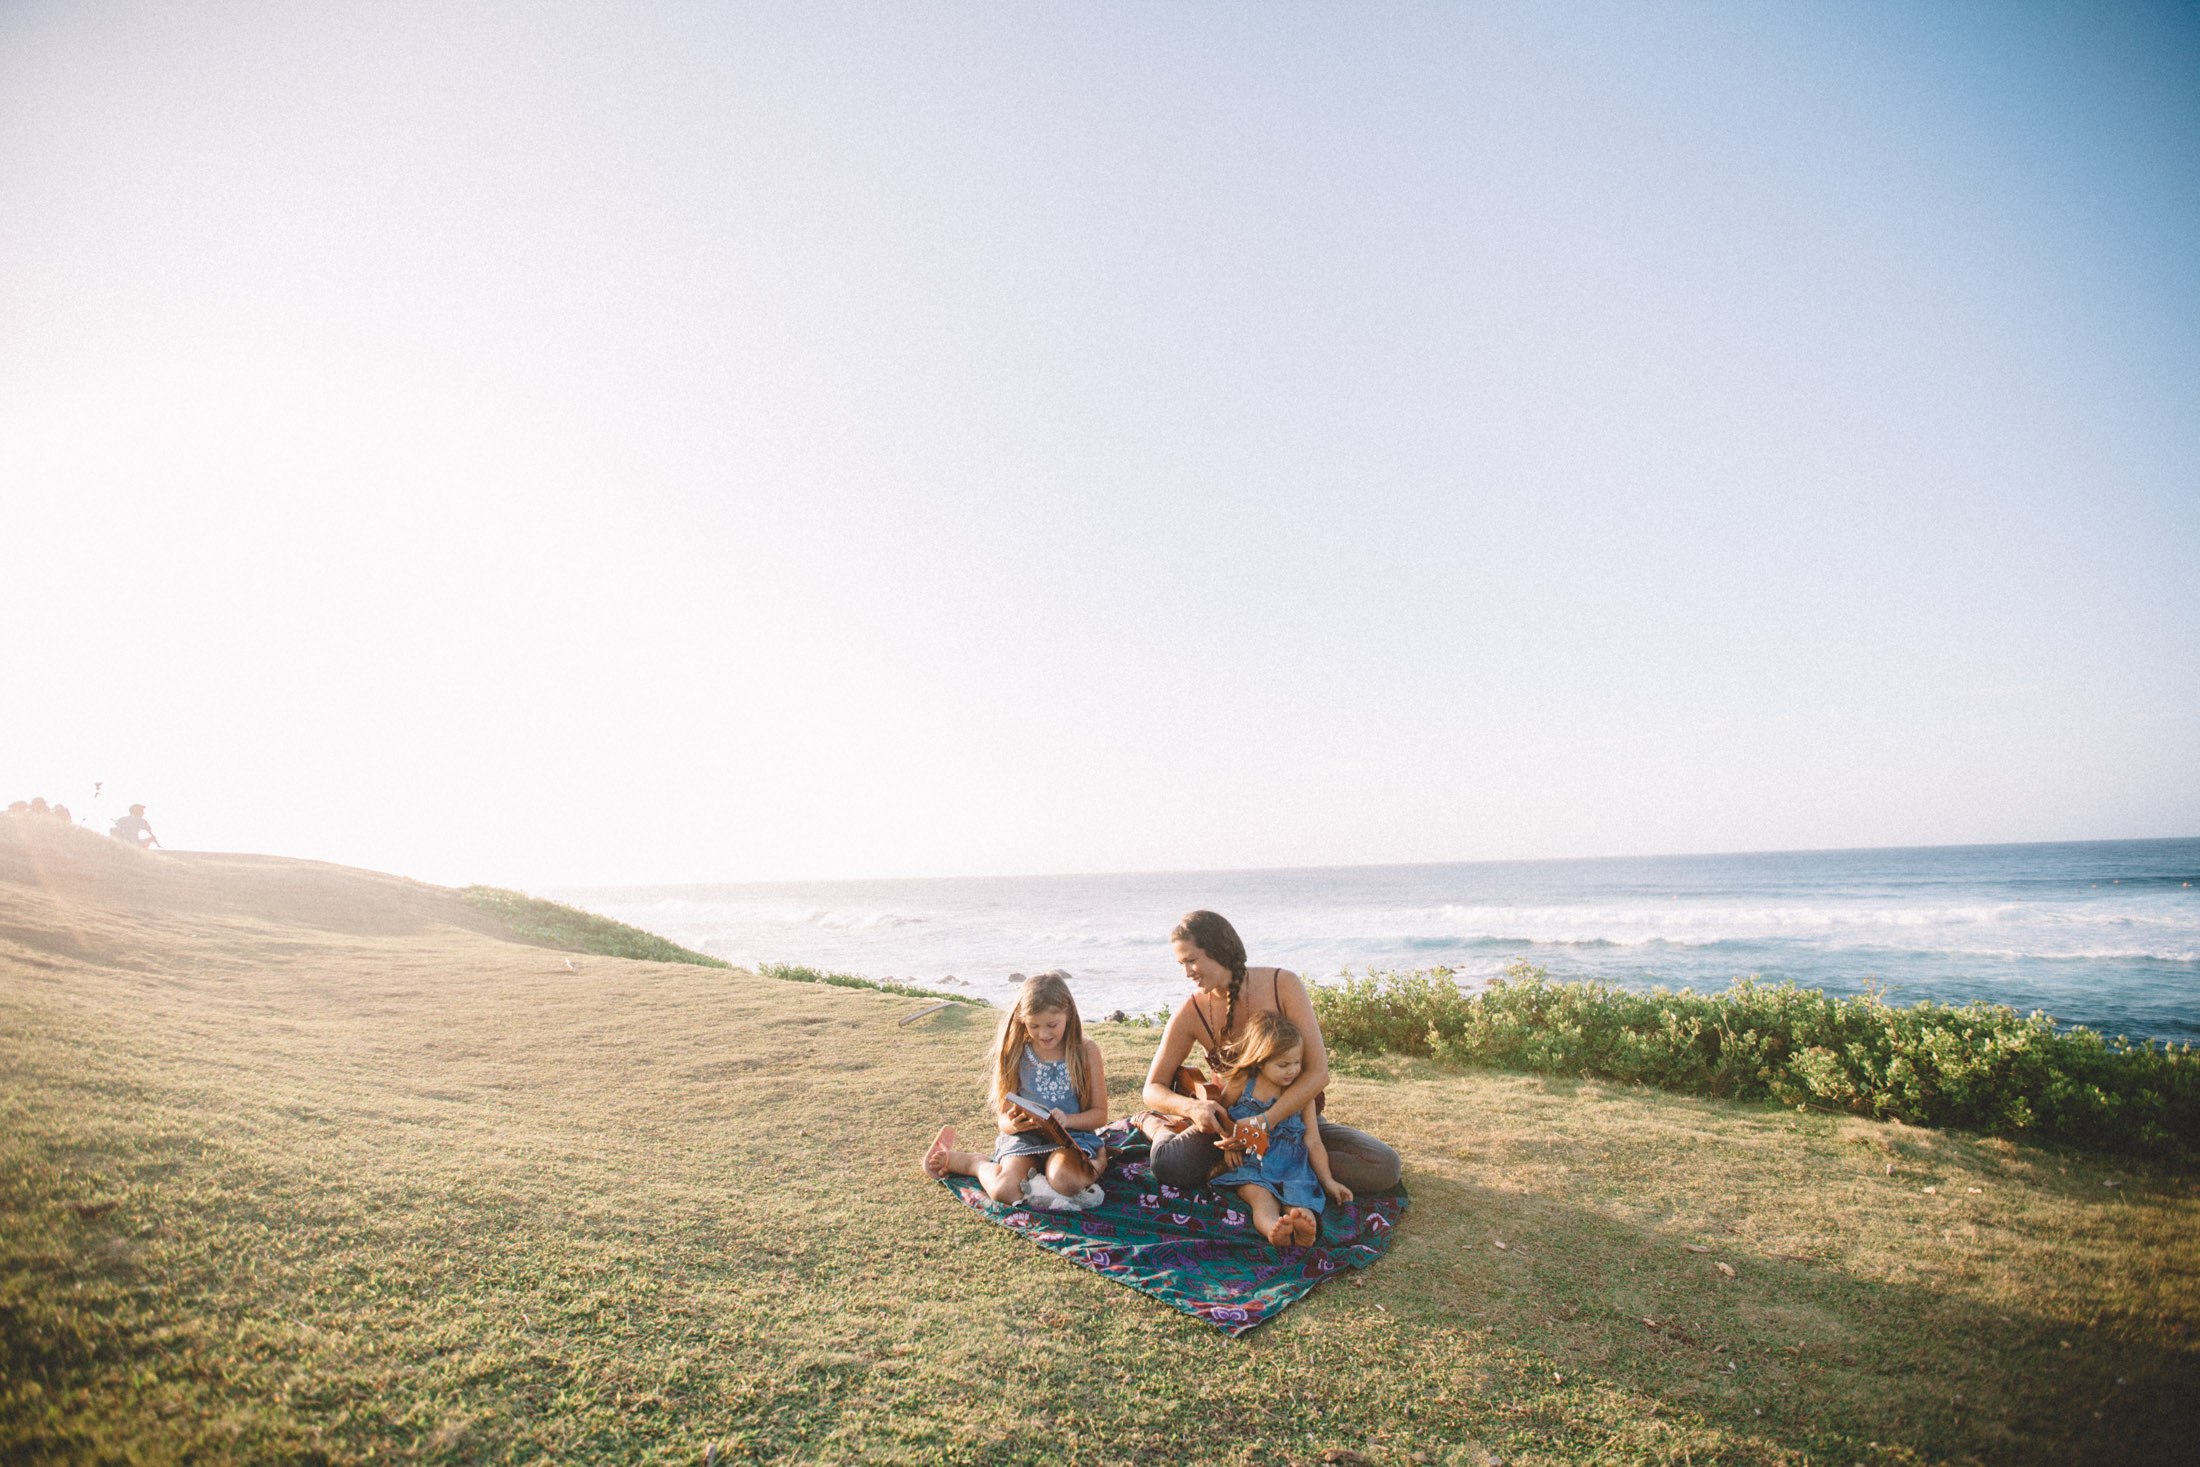 enjoy sunset and watch the surf with your family at hookipa lookout on Maui.